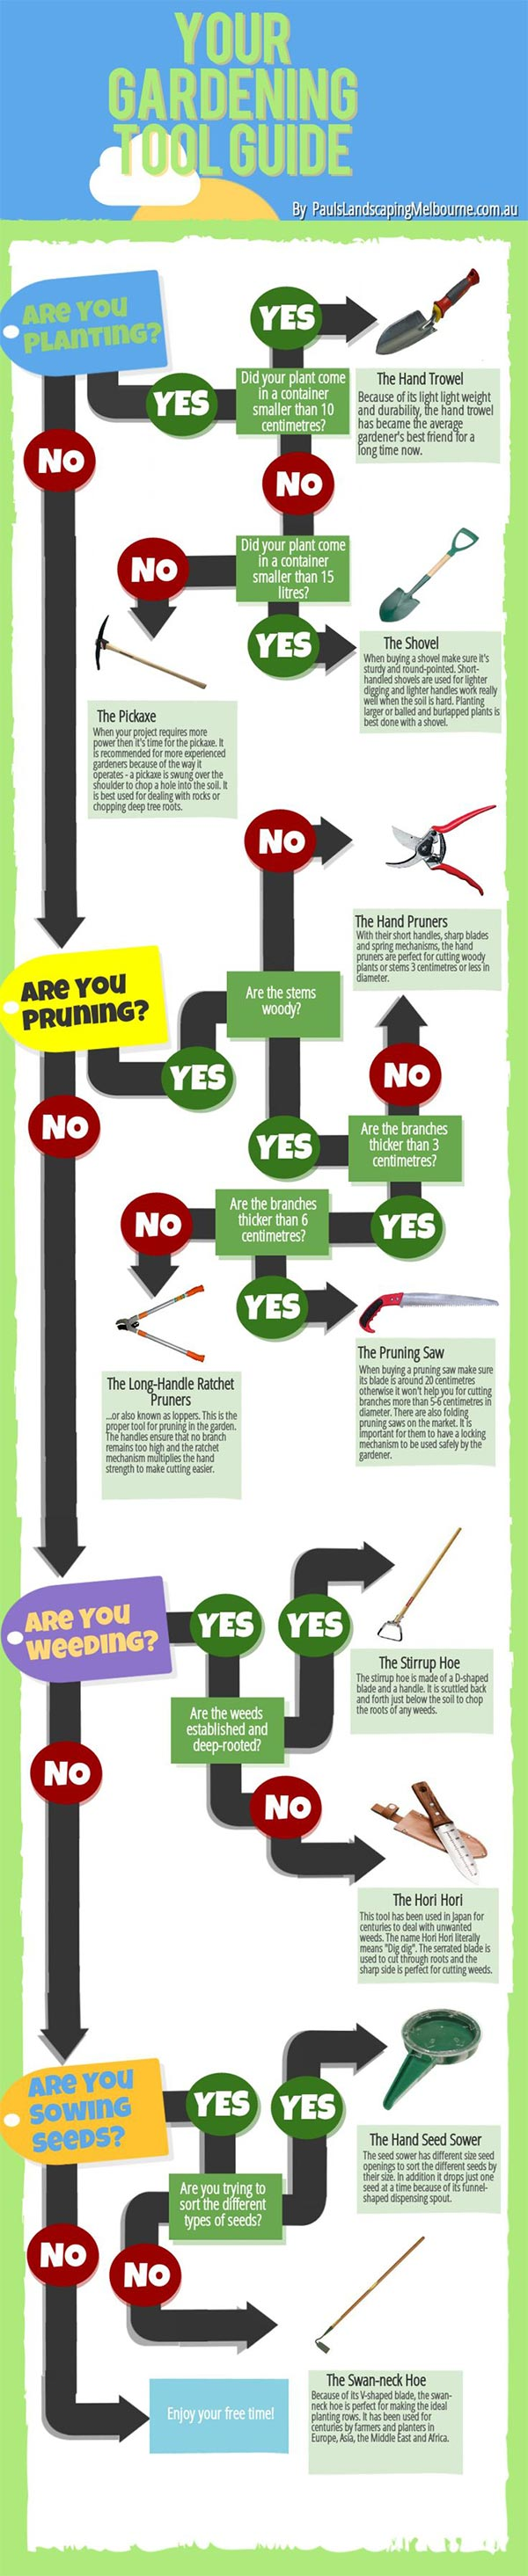 gardening tool guide for beginners